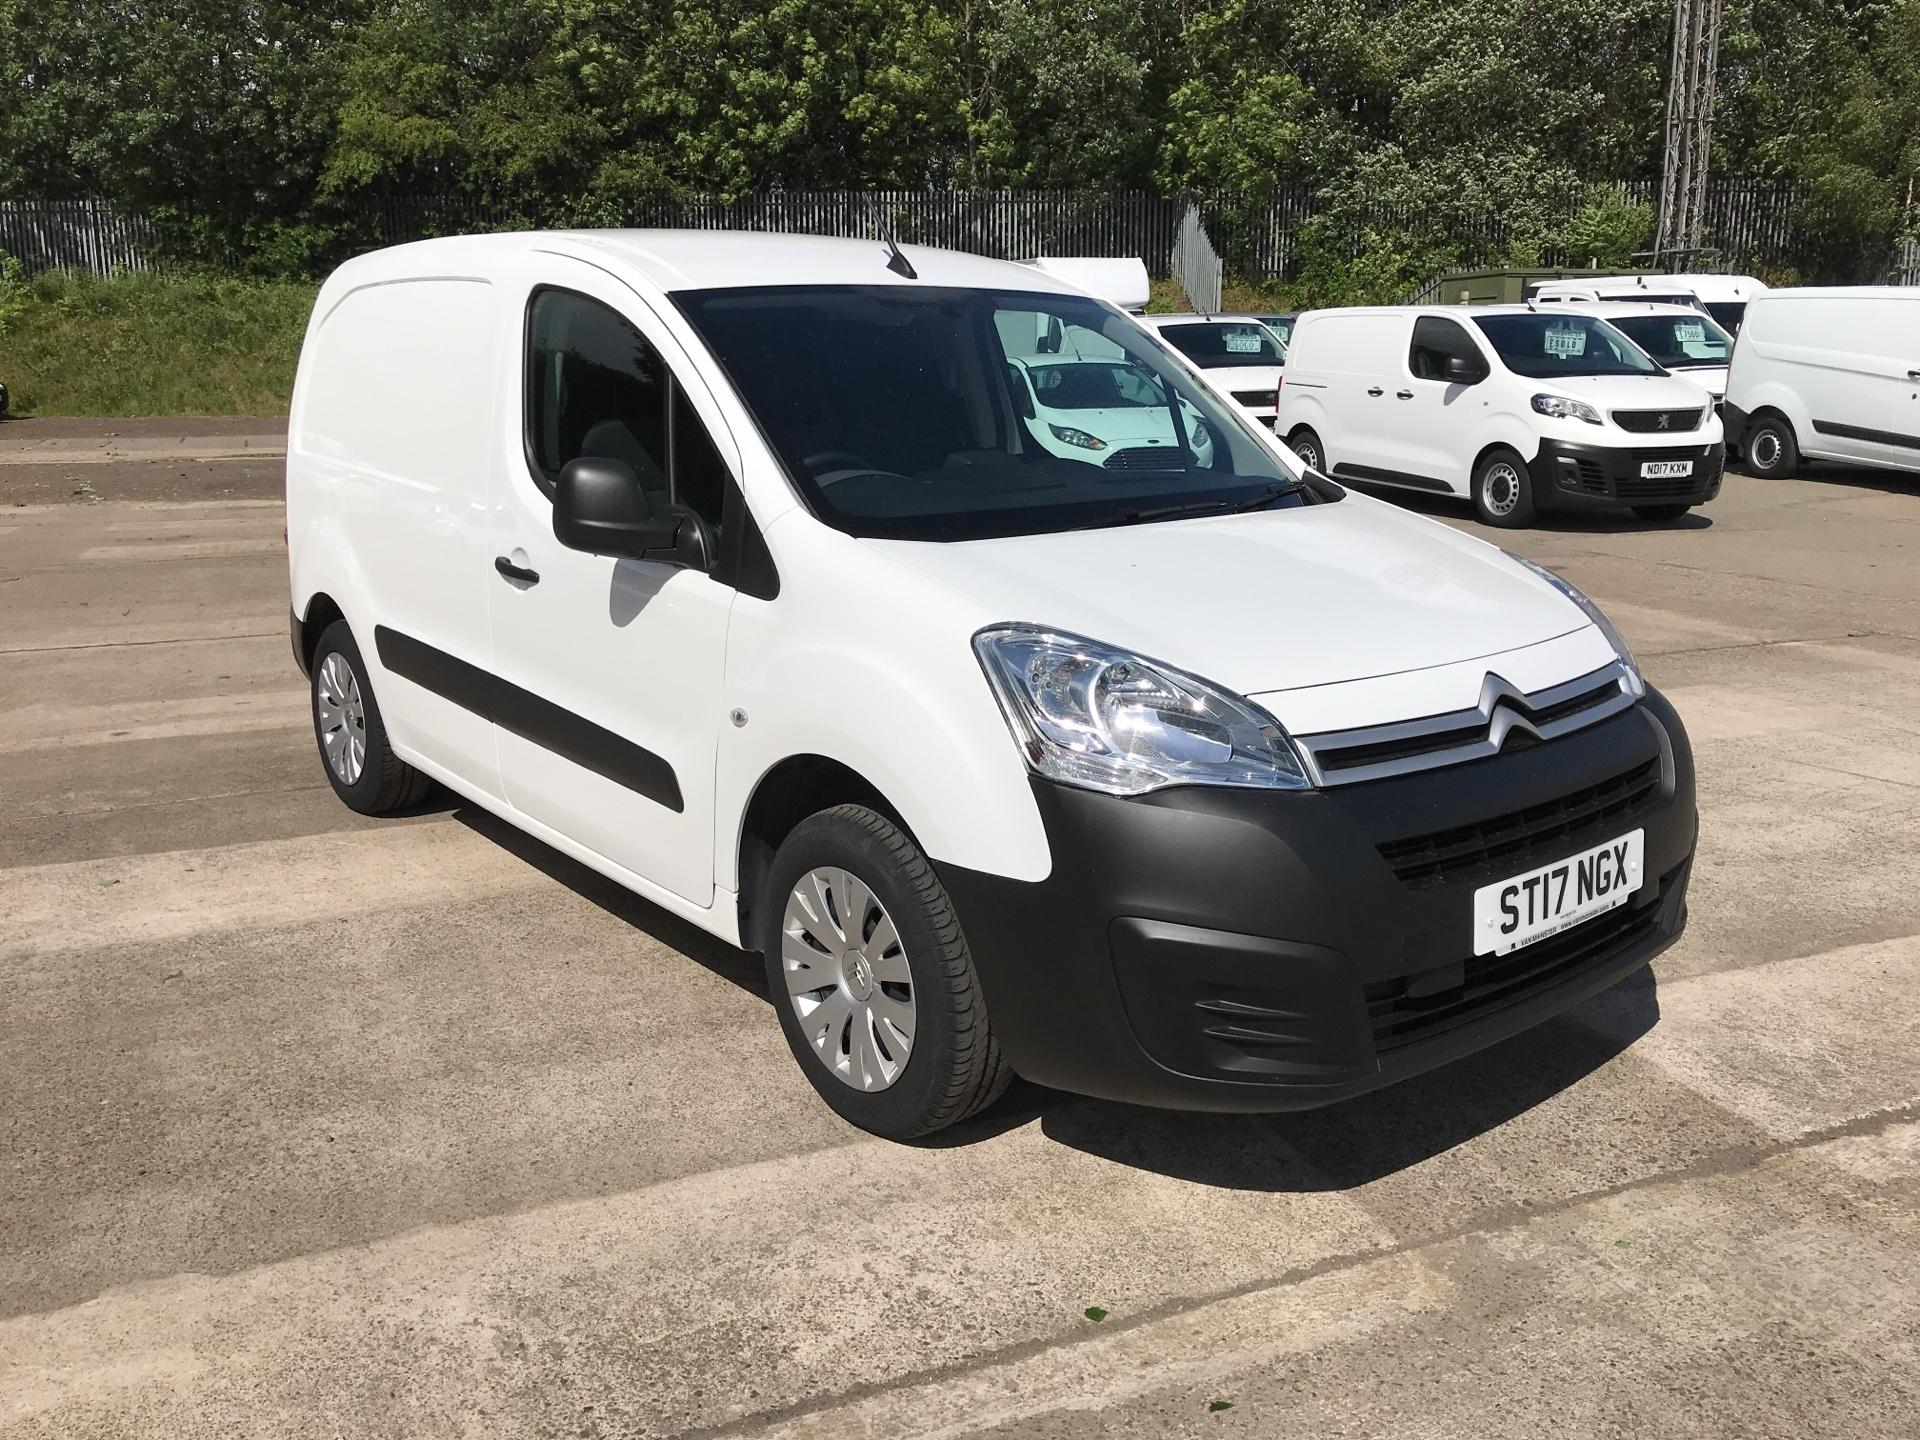 2017 Citroen Berlingo L1 DIESEL 1.6 HDI 625KG ENTERPRISE 75PS EURO 4/5 (ST17NGX) Image 1